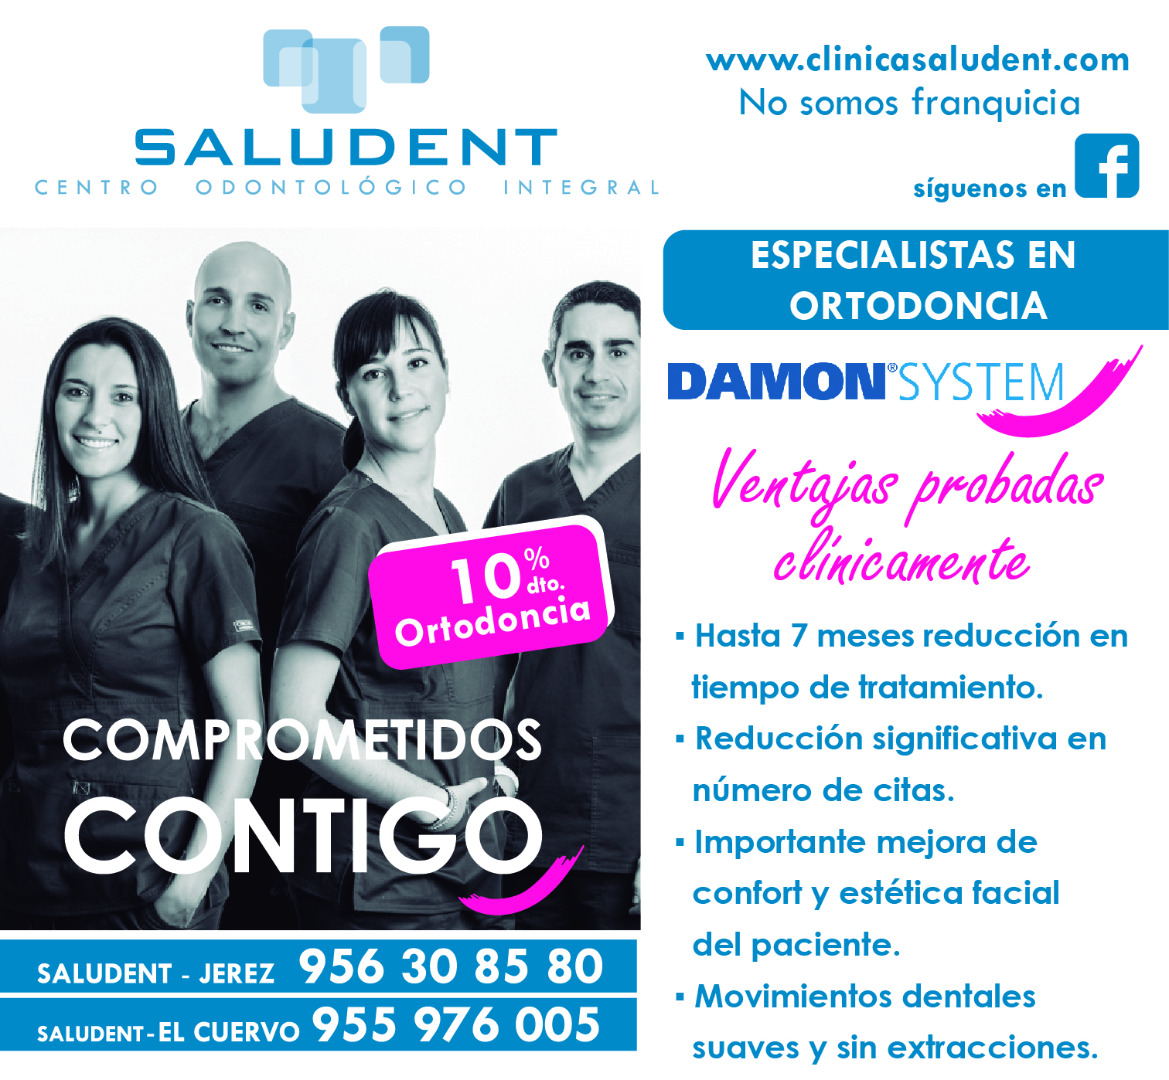 http://www.clinicasaludent.com/